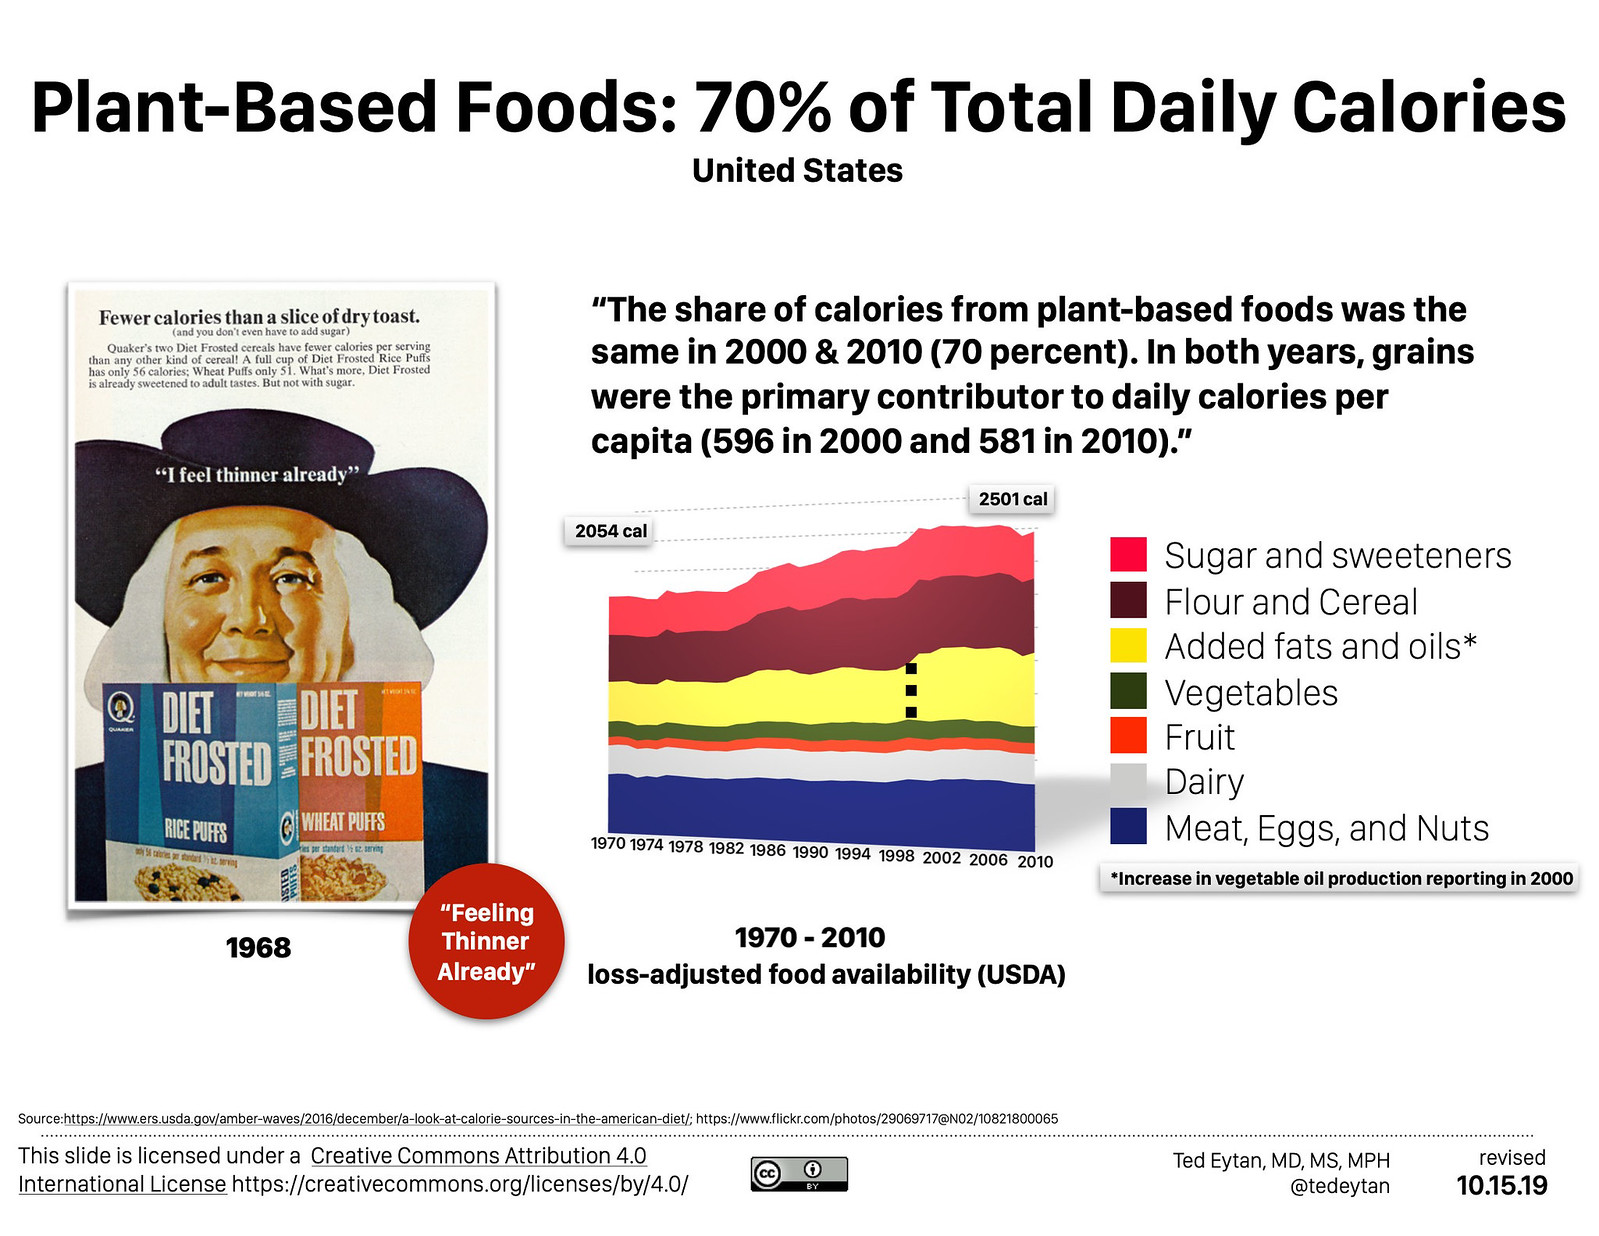 Just Read: Plant-based foods are 70% of Americans' Daily Calories - What should future dietary guidance be?